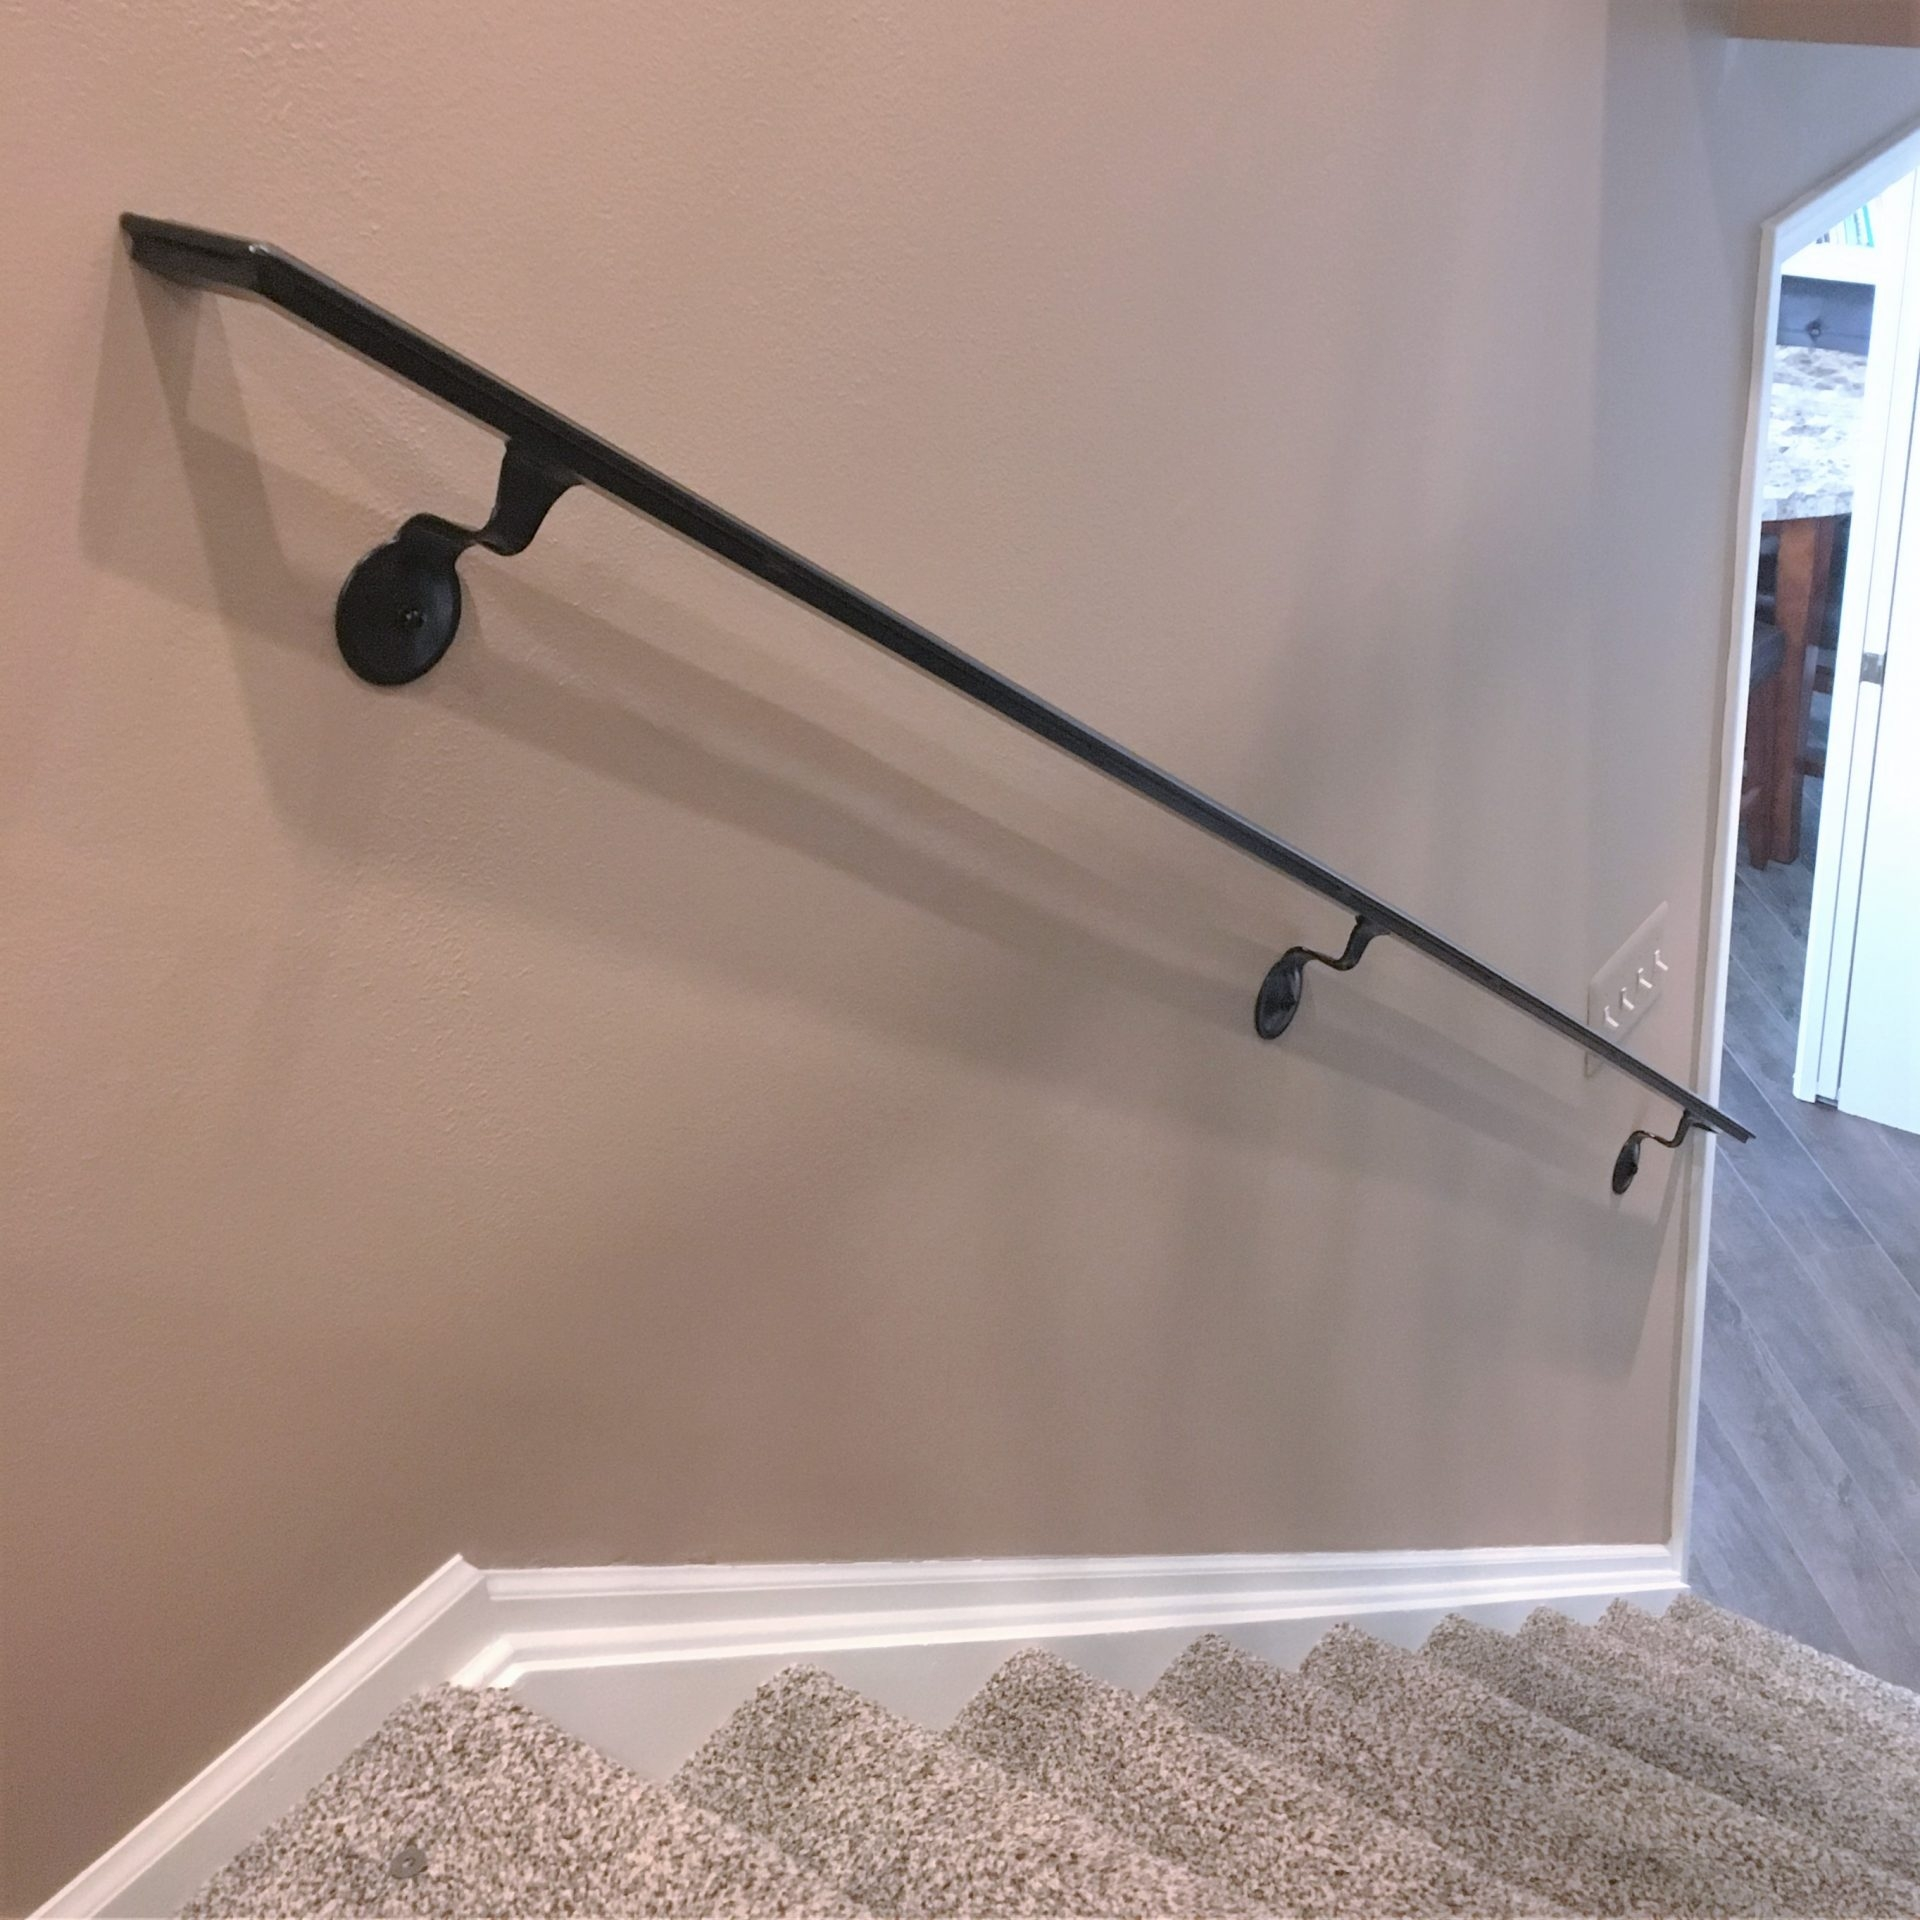 Basic Wrought Iron Wall Mounted Handrail Great Lakes Metal | Wrought Iron Handrail For Steps | Aluminum | Simple | Front Door Step | Forged Iron | Custom